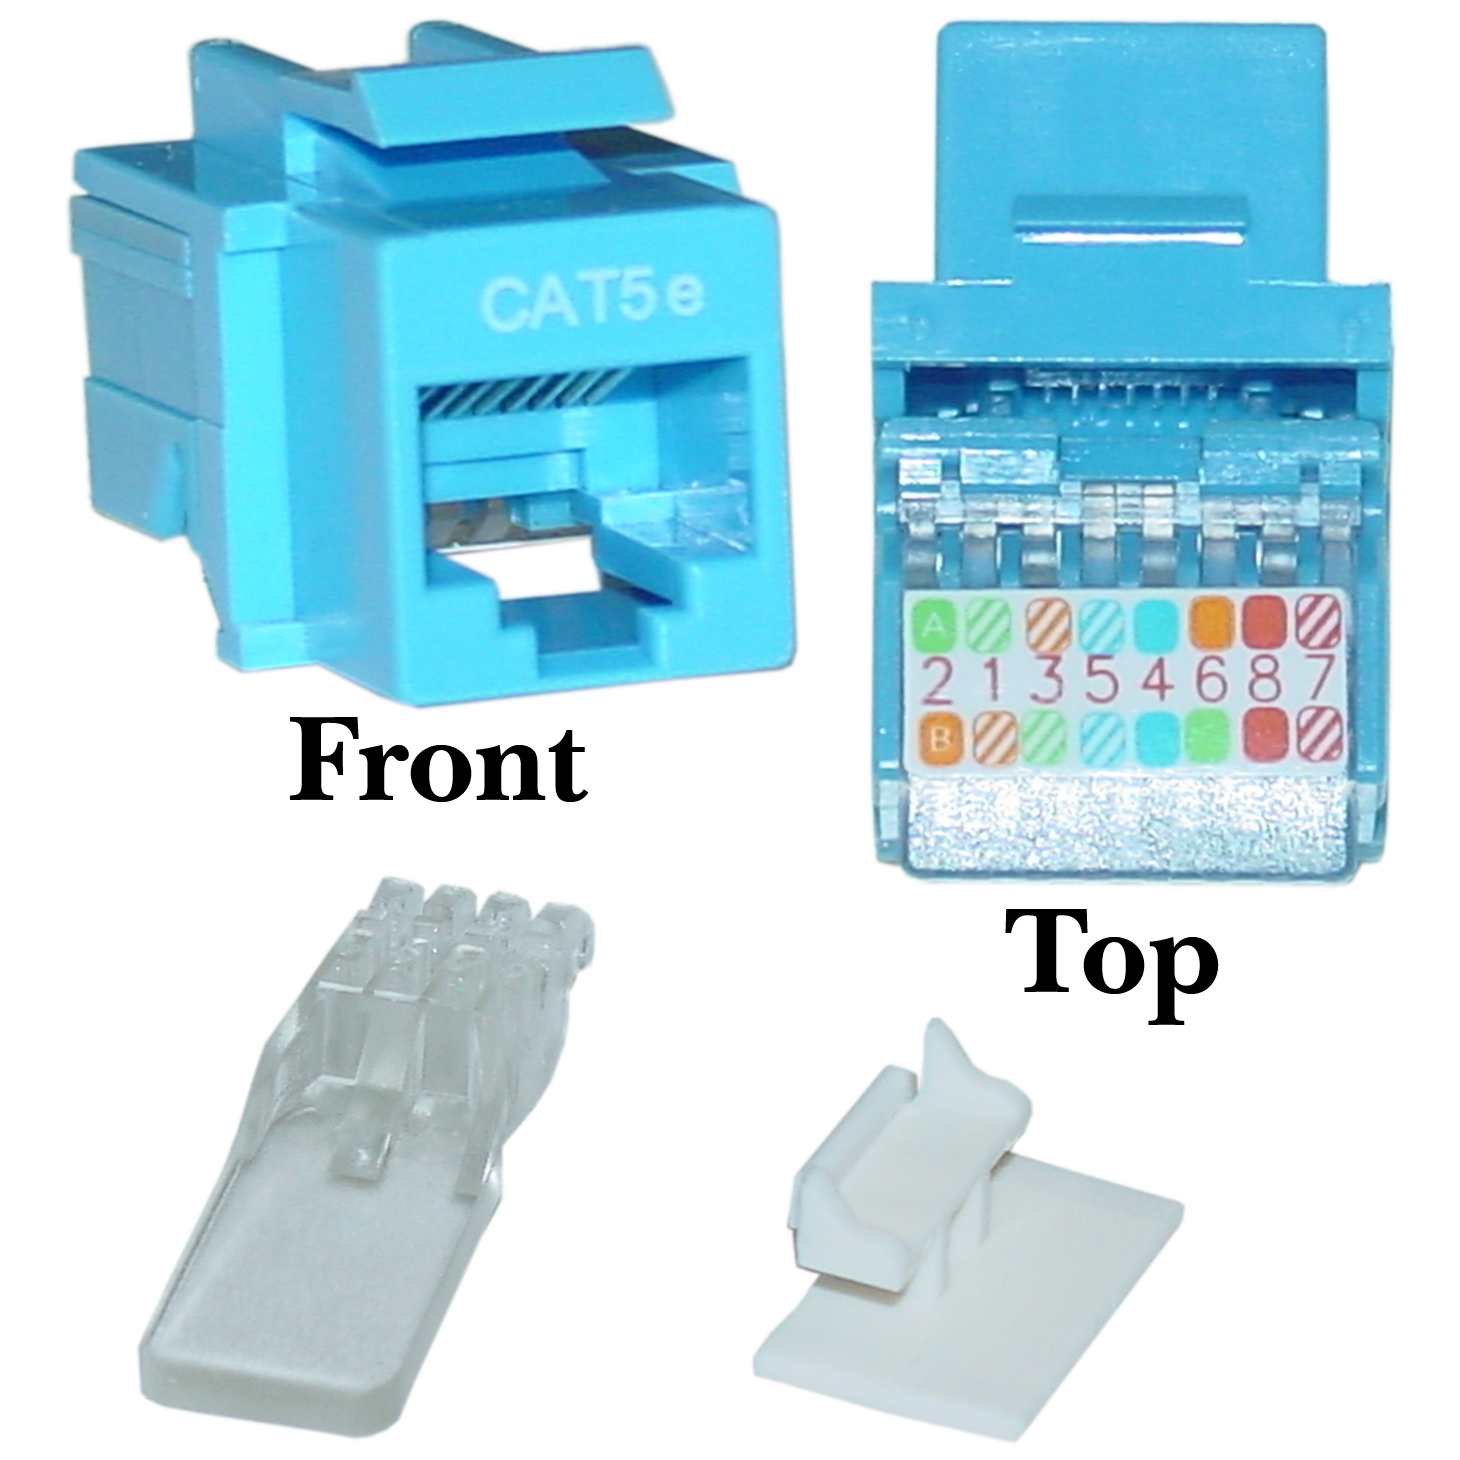 hight resolution of blue cat5e rj45 keystone jack toollesscat5e keystone jack blue toolless rj45 female